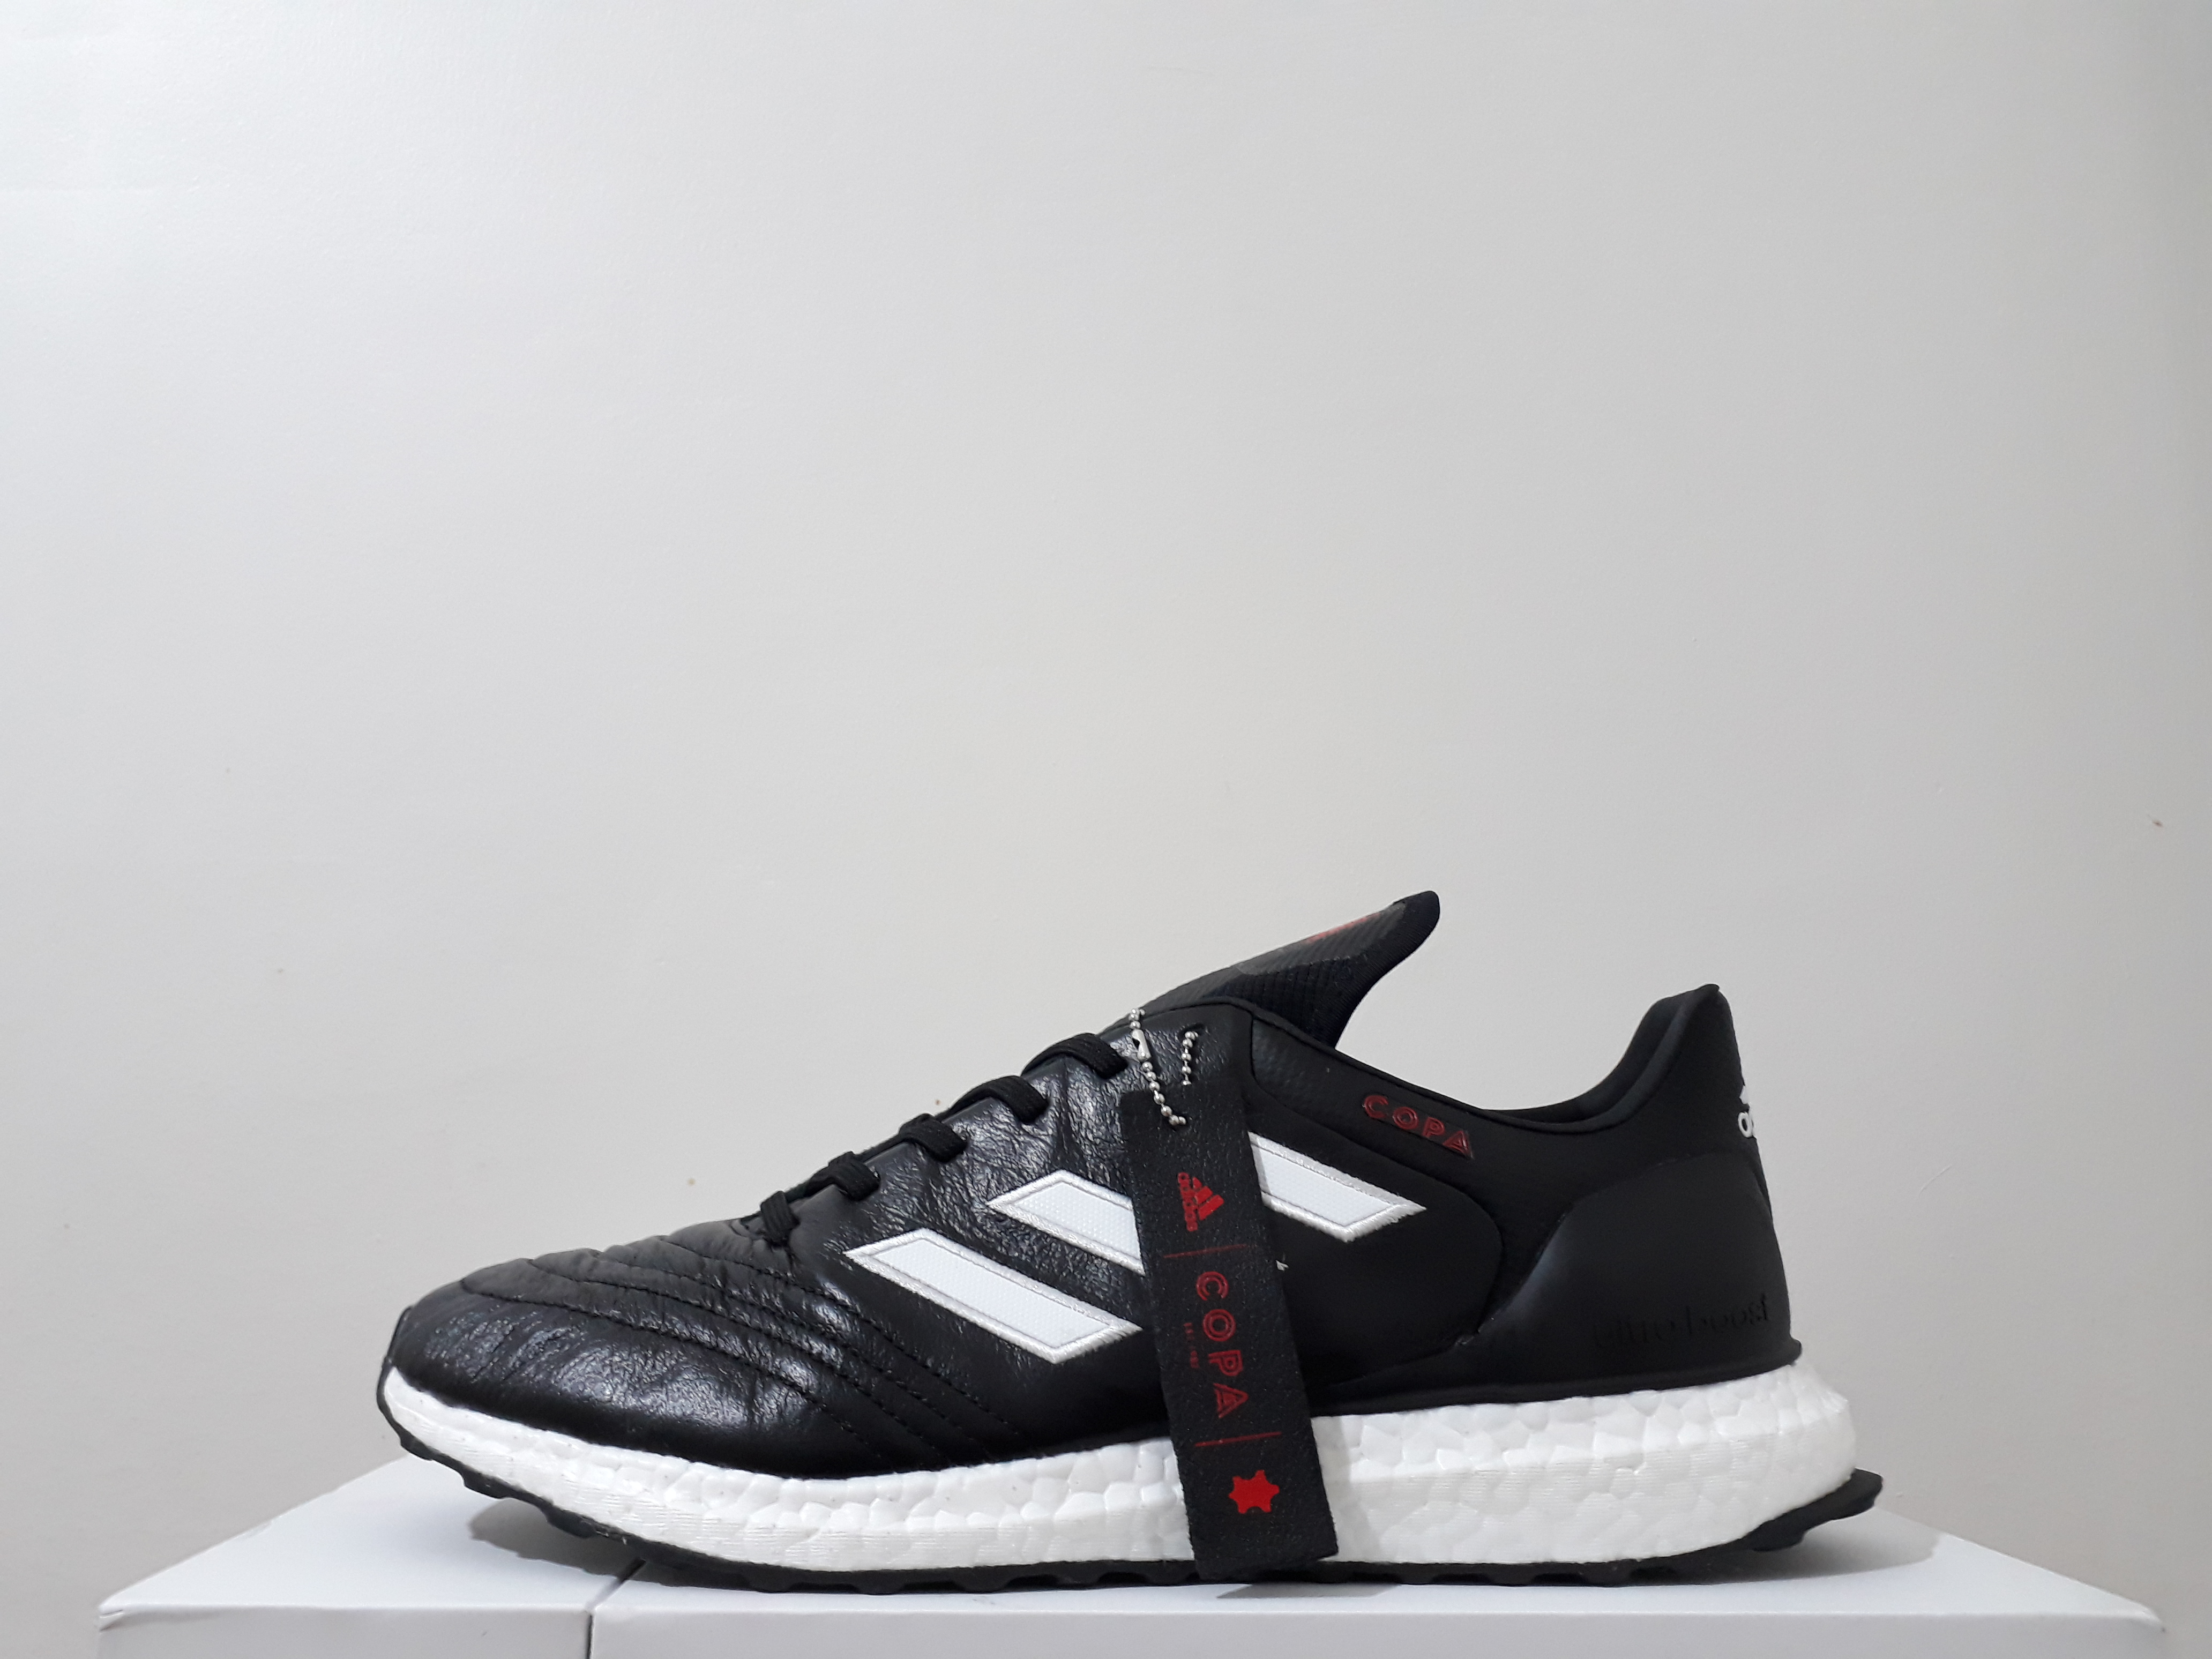 innovative design ff0d6 cb417 OFFER UP!!! adidas copa 17.1 ultra boost (CG3070) US10.5, KITH, RONNIE FIEG  Size 10.5 - Low-Top Sneakers for Sale - Grailed